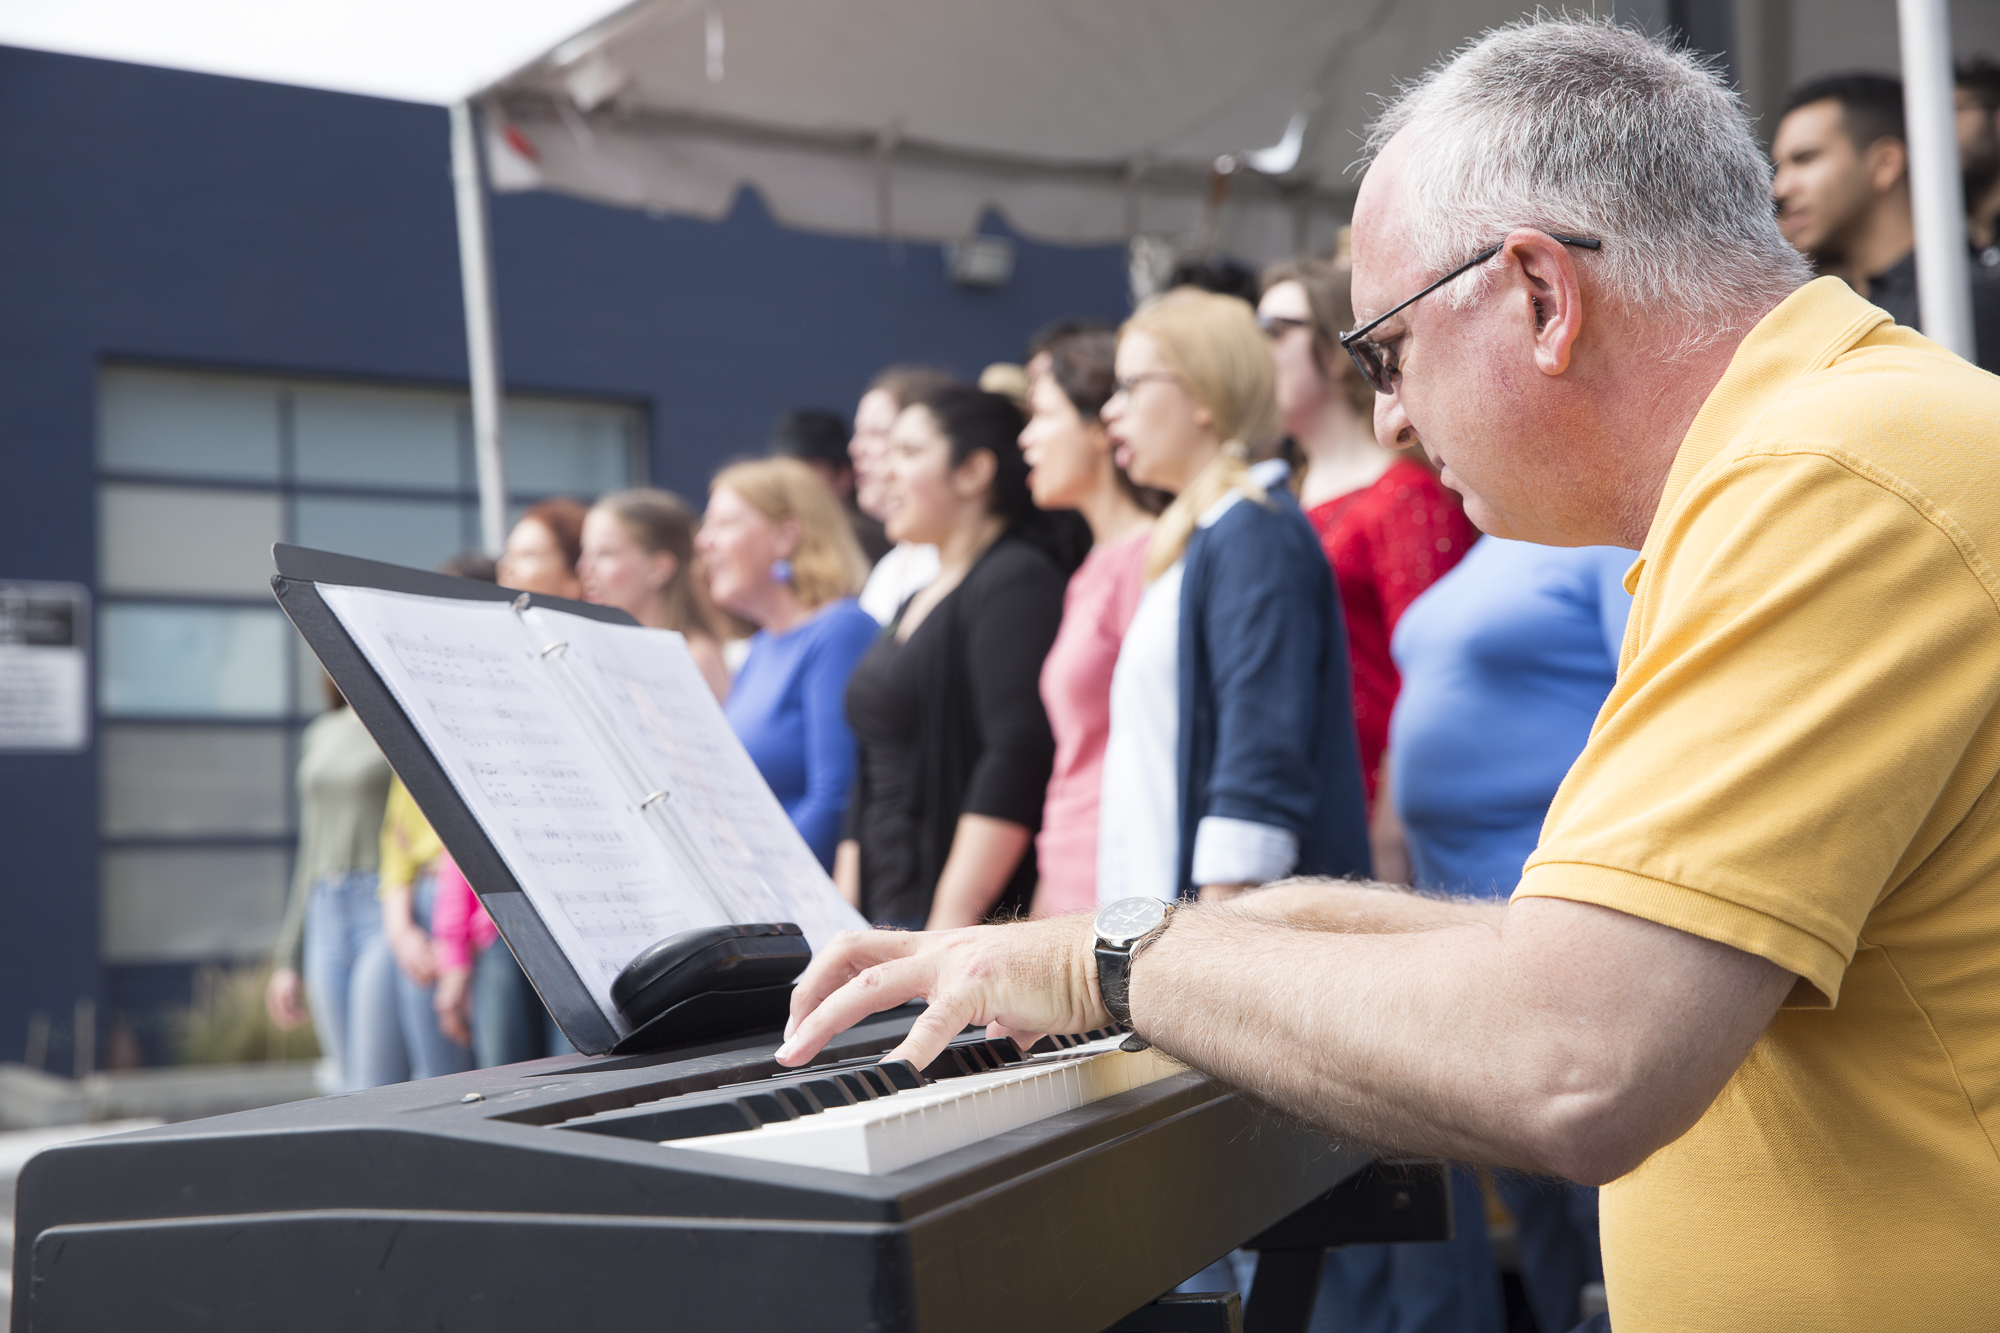 The Santa Monica College Jazz Vocal Ensemble pianist (staff accompanist) Frank Basile (right) plays classic Frank Sinatra songs on the piano during the beginning of the Pico Block Party festivities that took place at the 18th street Arts Center in Santa Monica, California on Saturday May 19, 2018. The Pico Block Party is a celebration of artists and cultures of the Pico neighborhood in Santa Monica with the festivities primarily focusing on youth artists and empowering youth voices. (Matthew Martin/Corsair Photo)